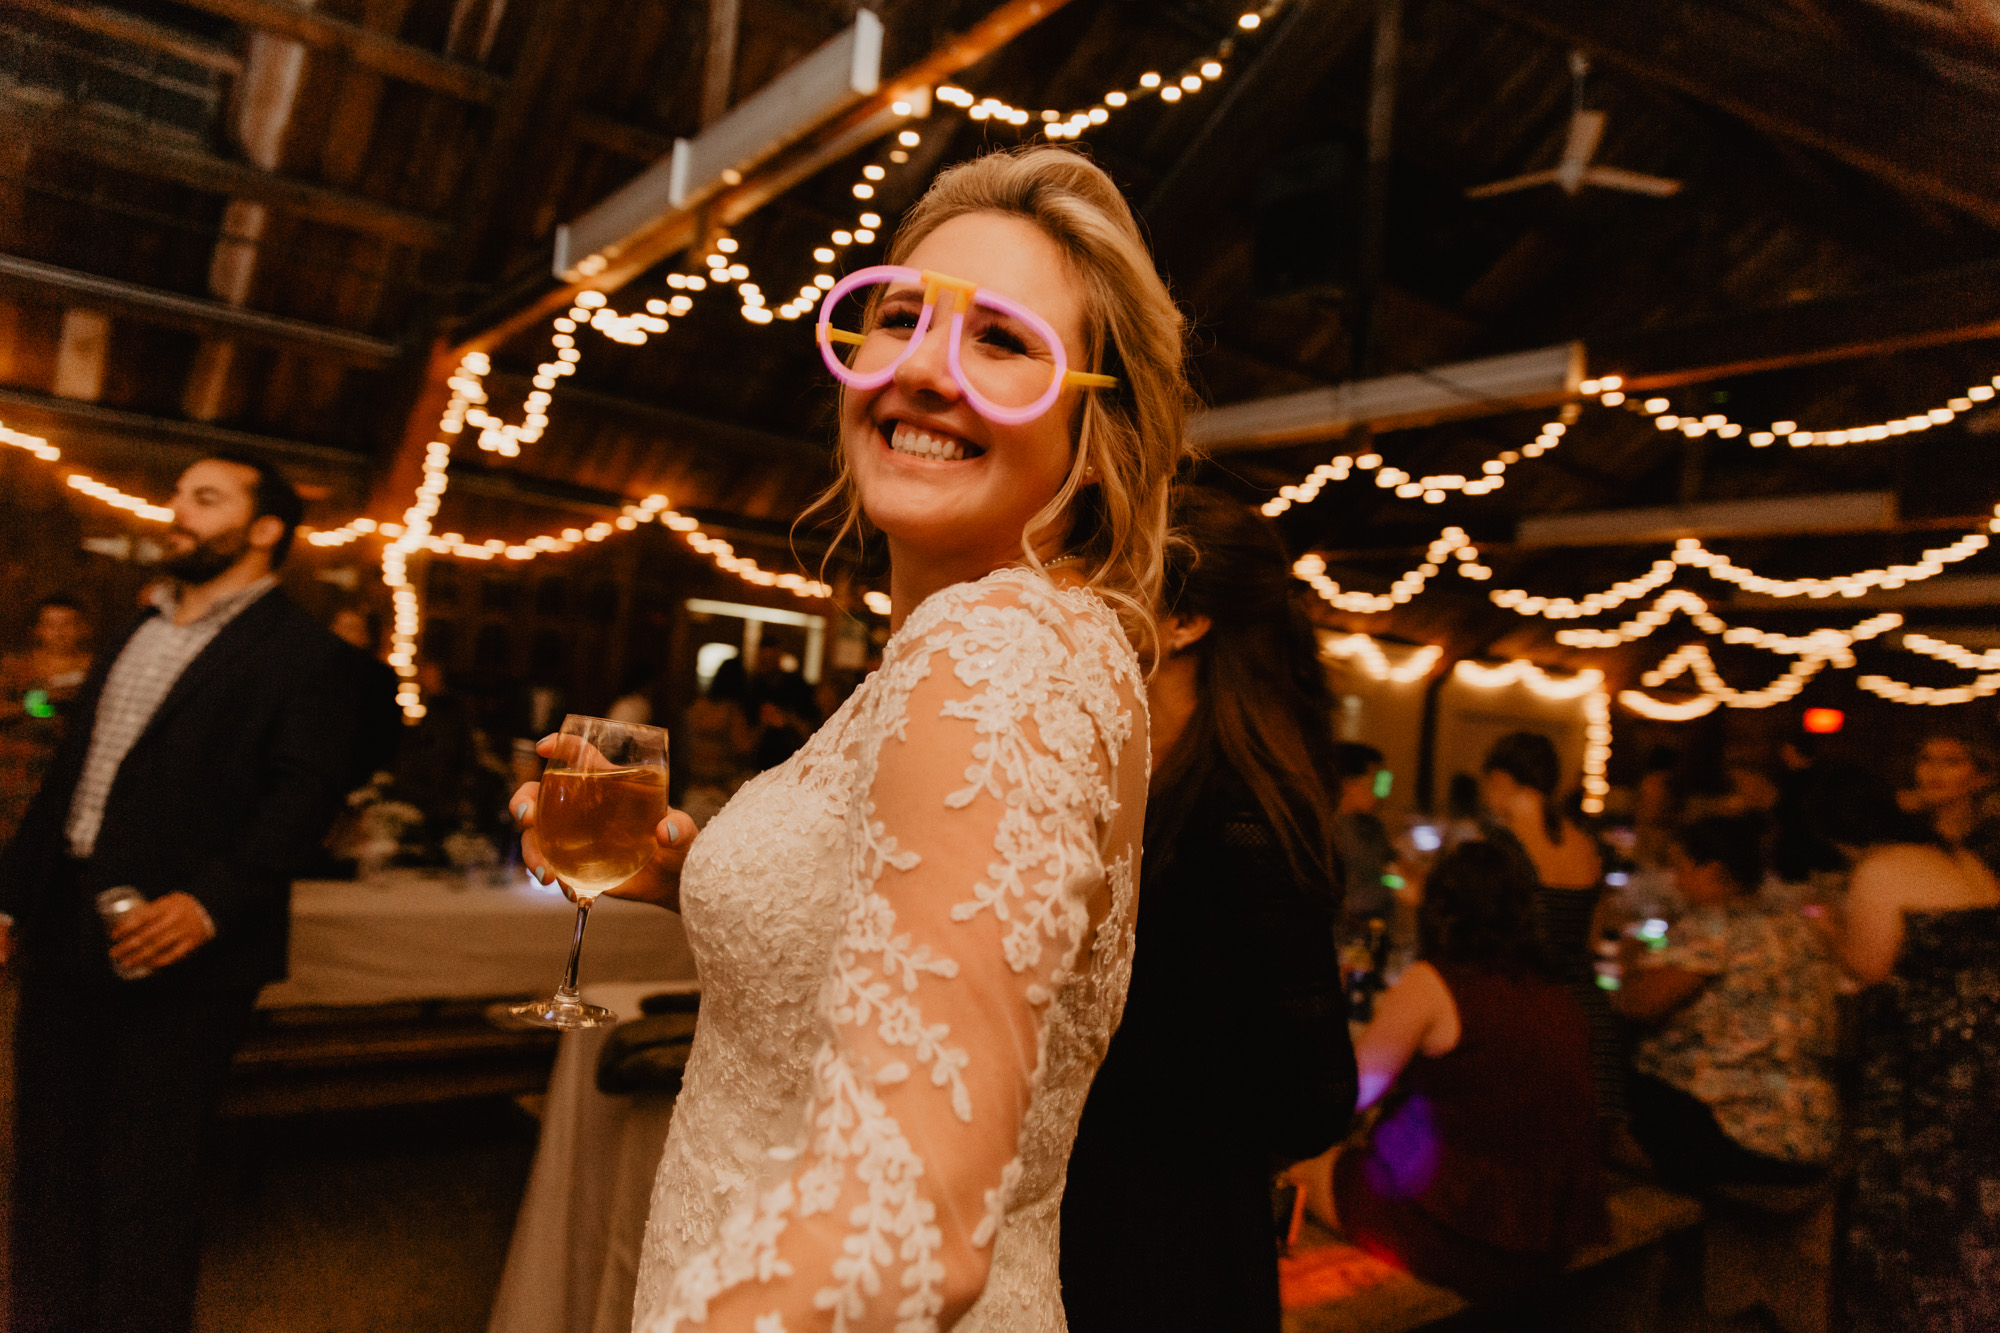 The bride poses while wearing a pair of glow stick sunglasses